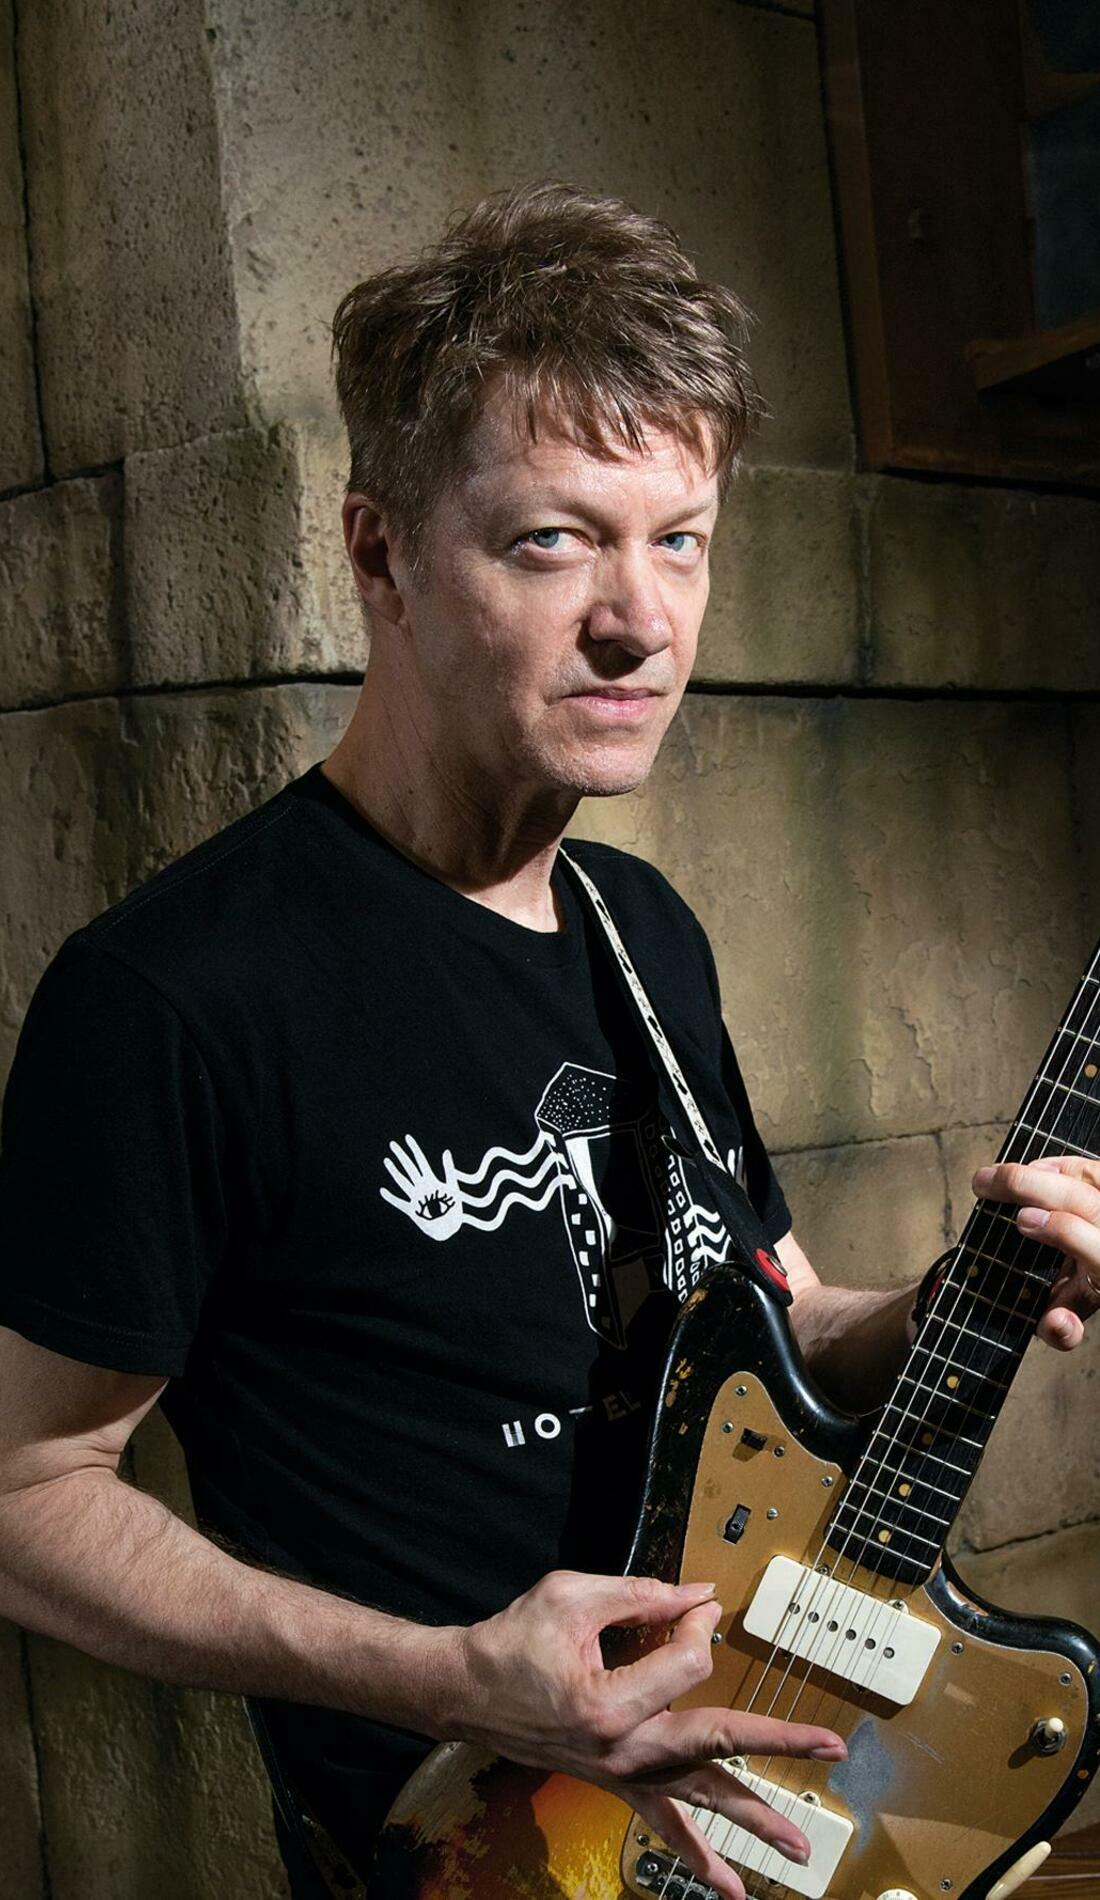 A Nels Cline live event